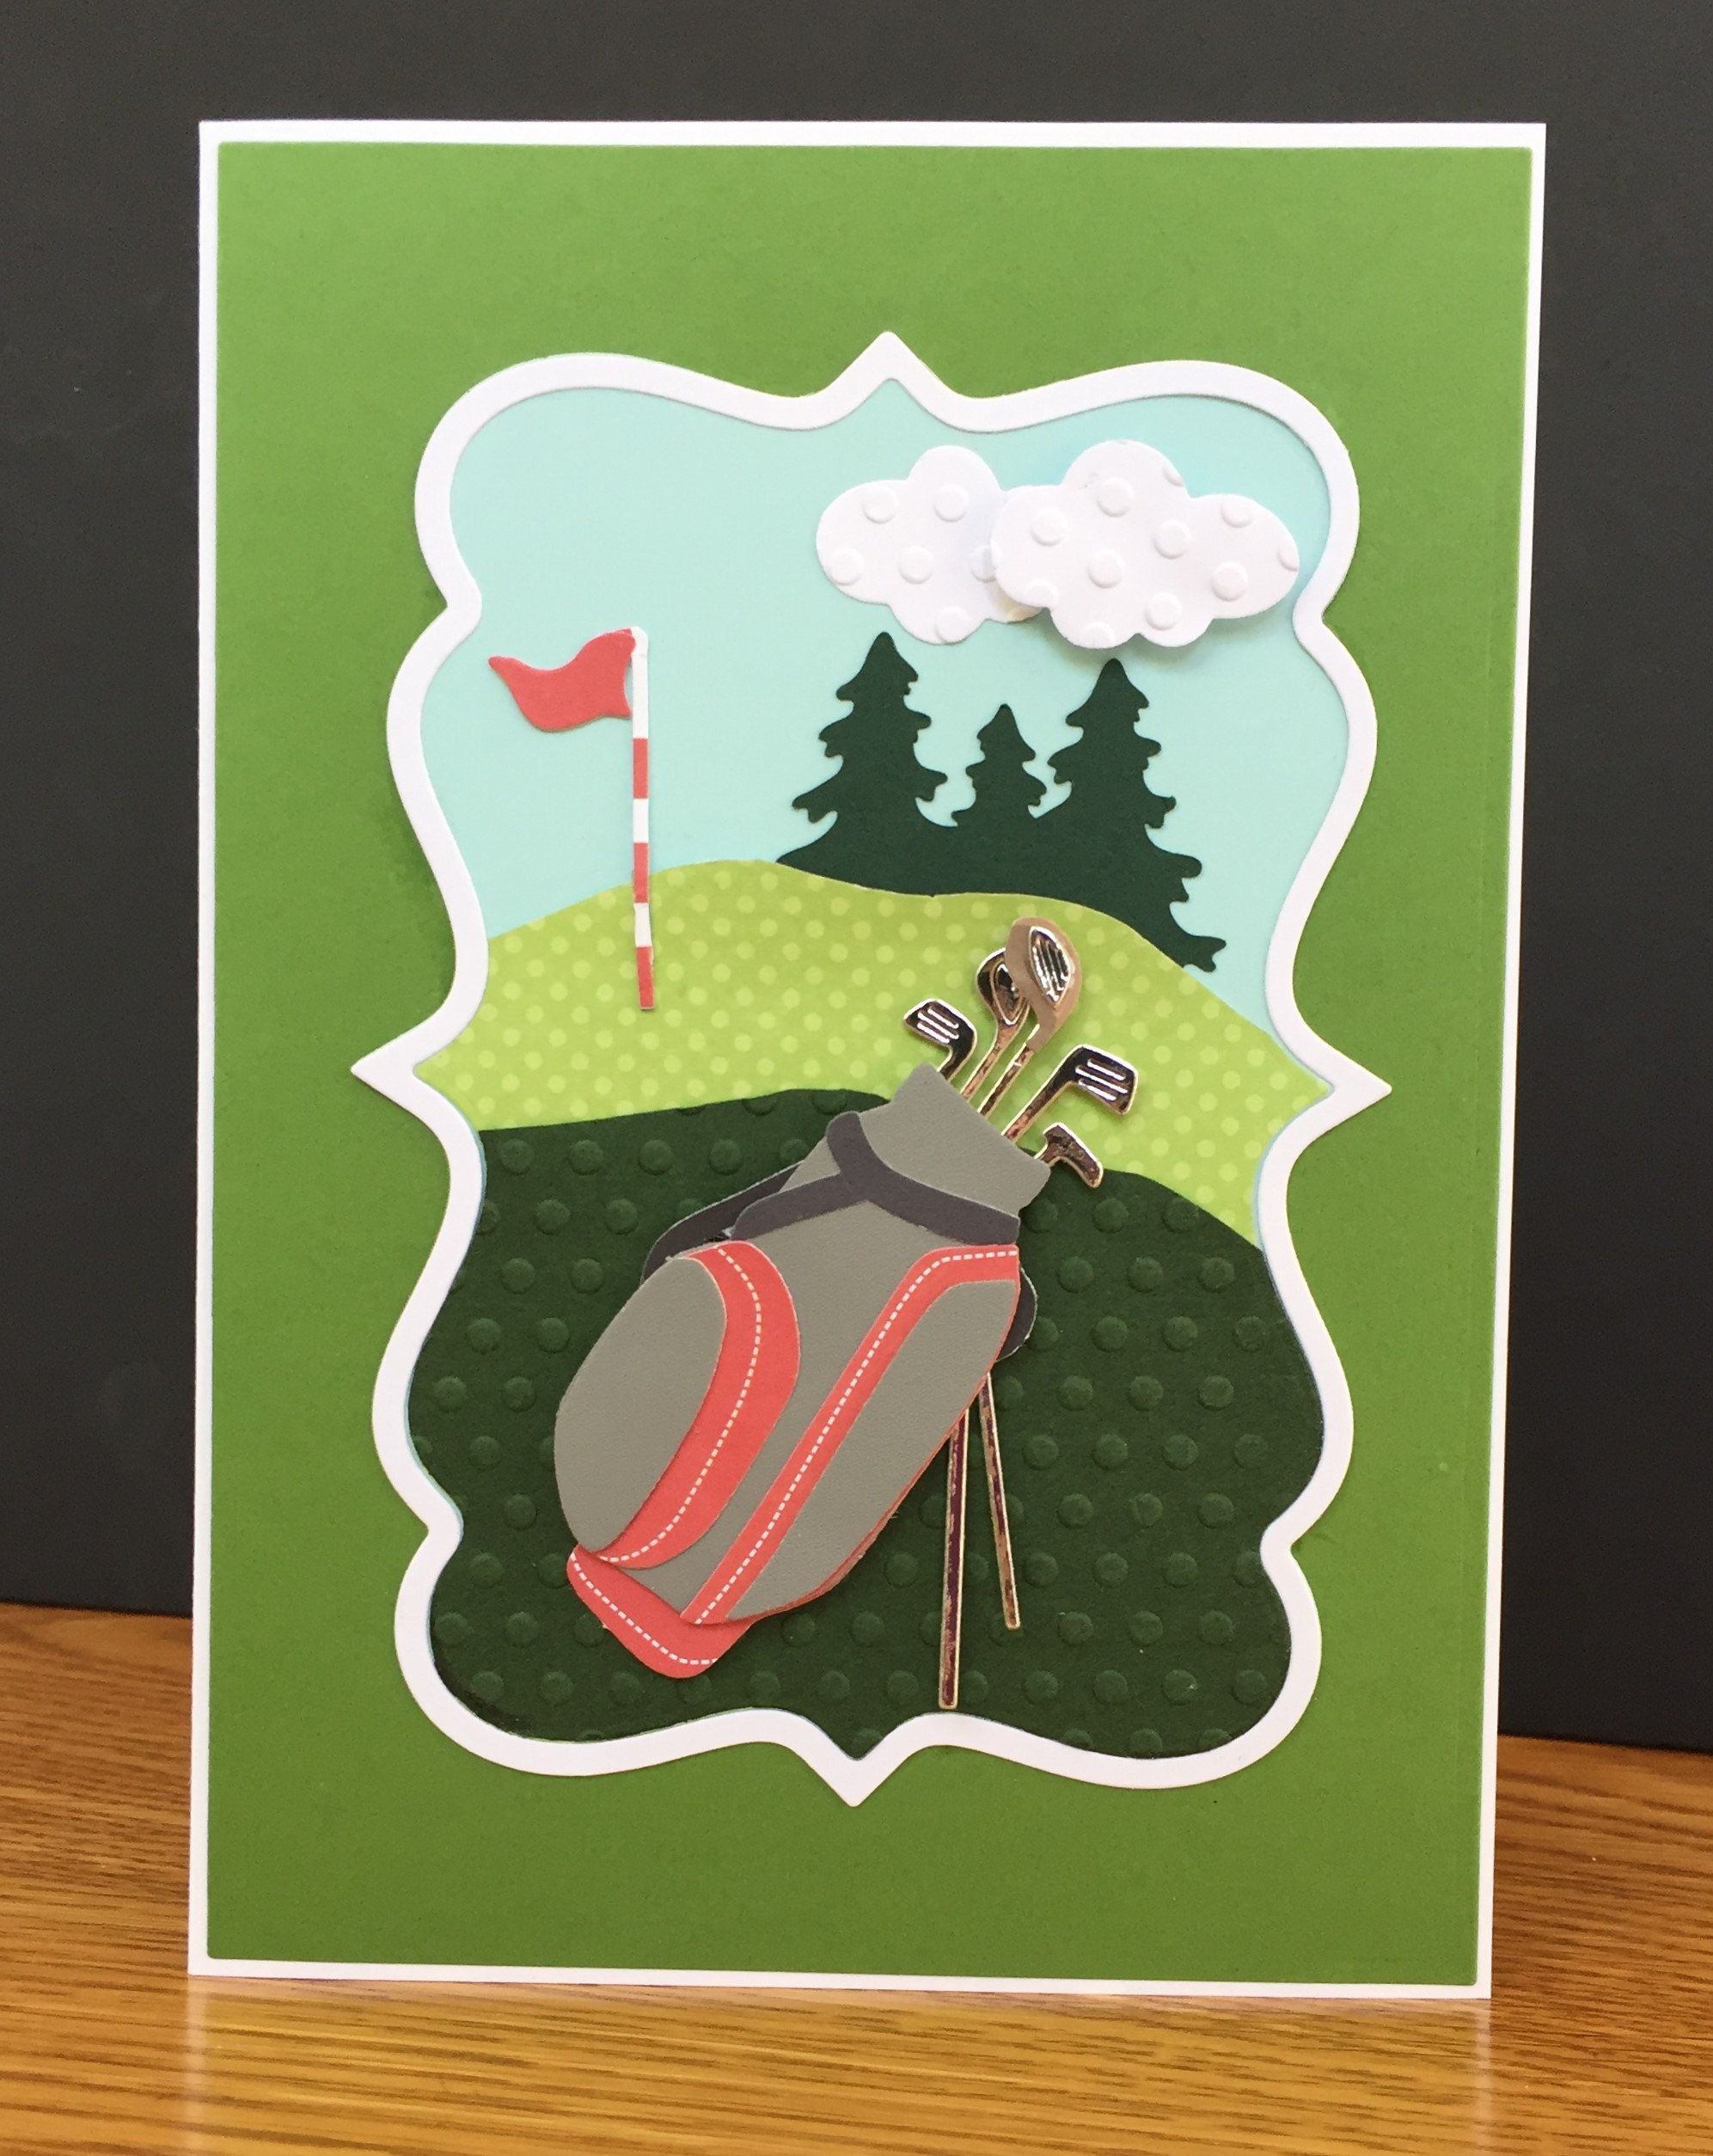 Golf Theme Handmade Happy Fathers Day Mothers Or Birthday Card Course 3D Bag Clubs For Lover By TreasureIslandCards On Etsy